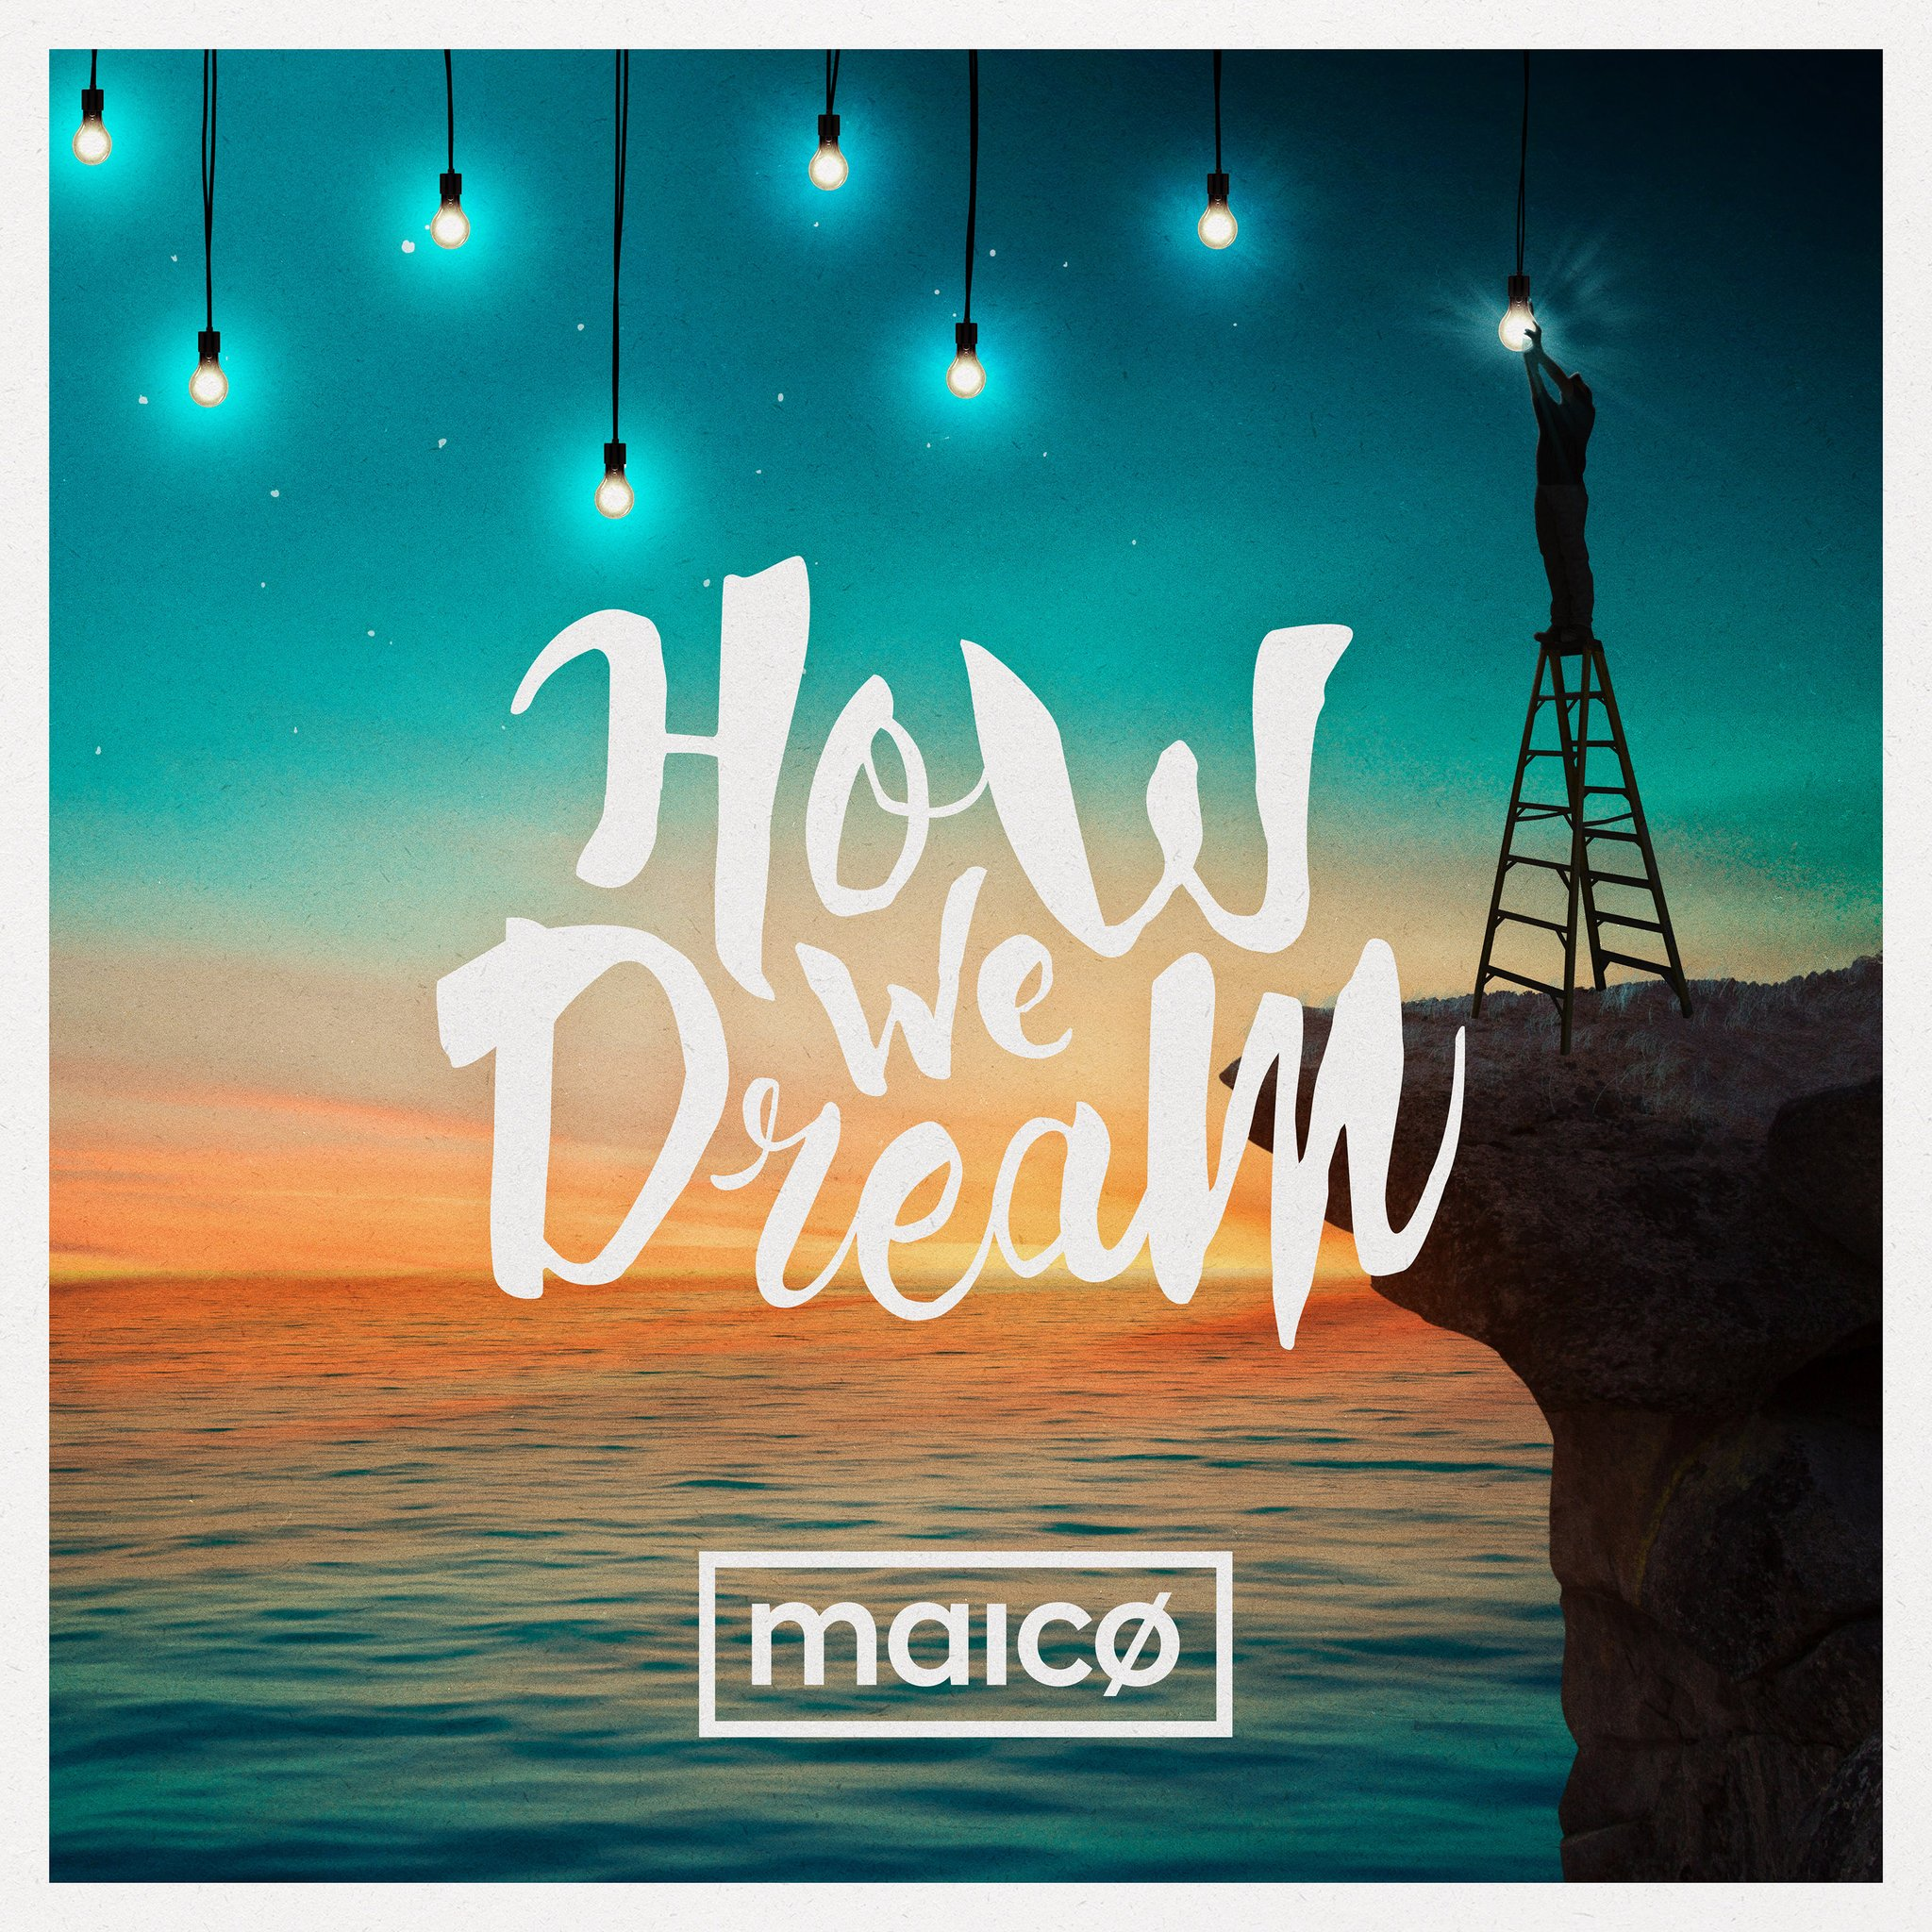 MAICØ - How We Dream